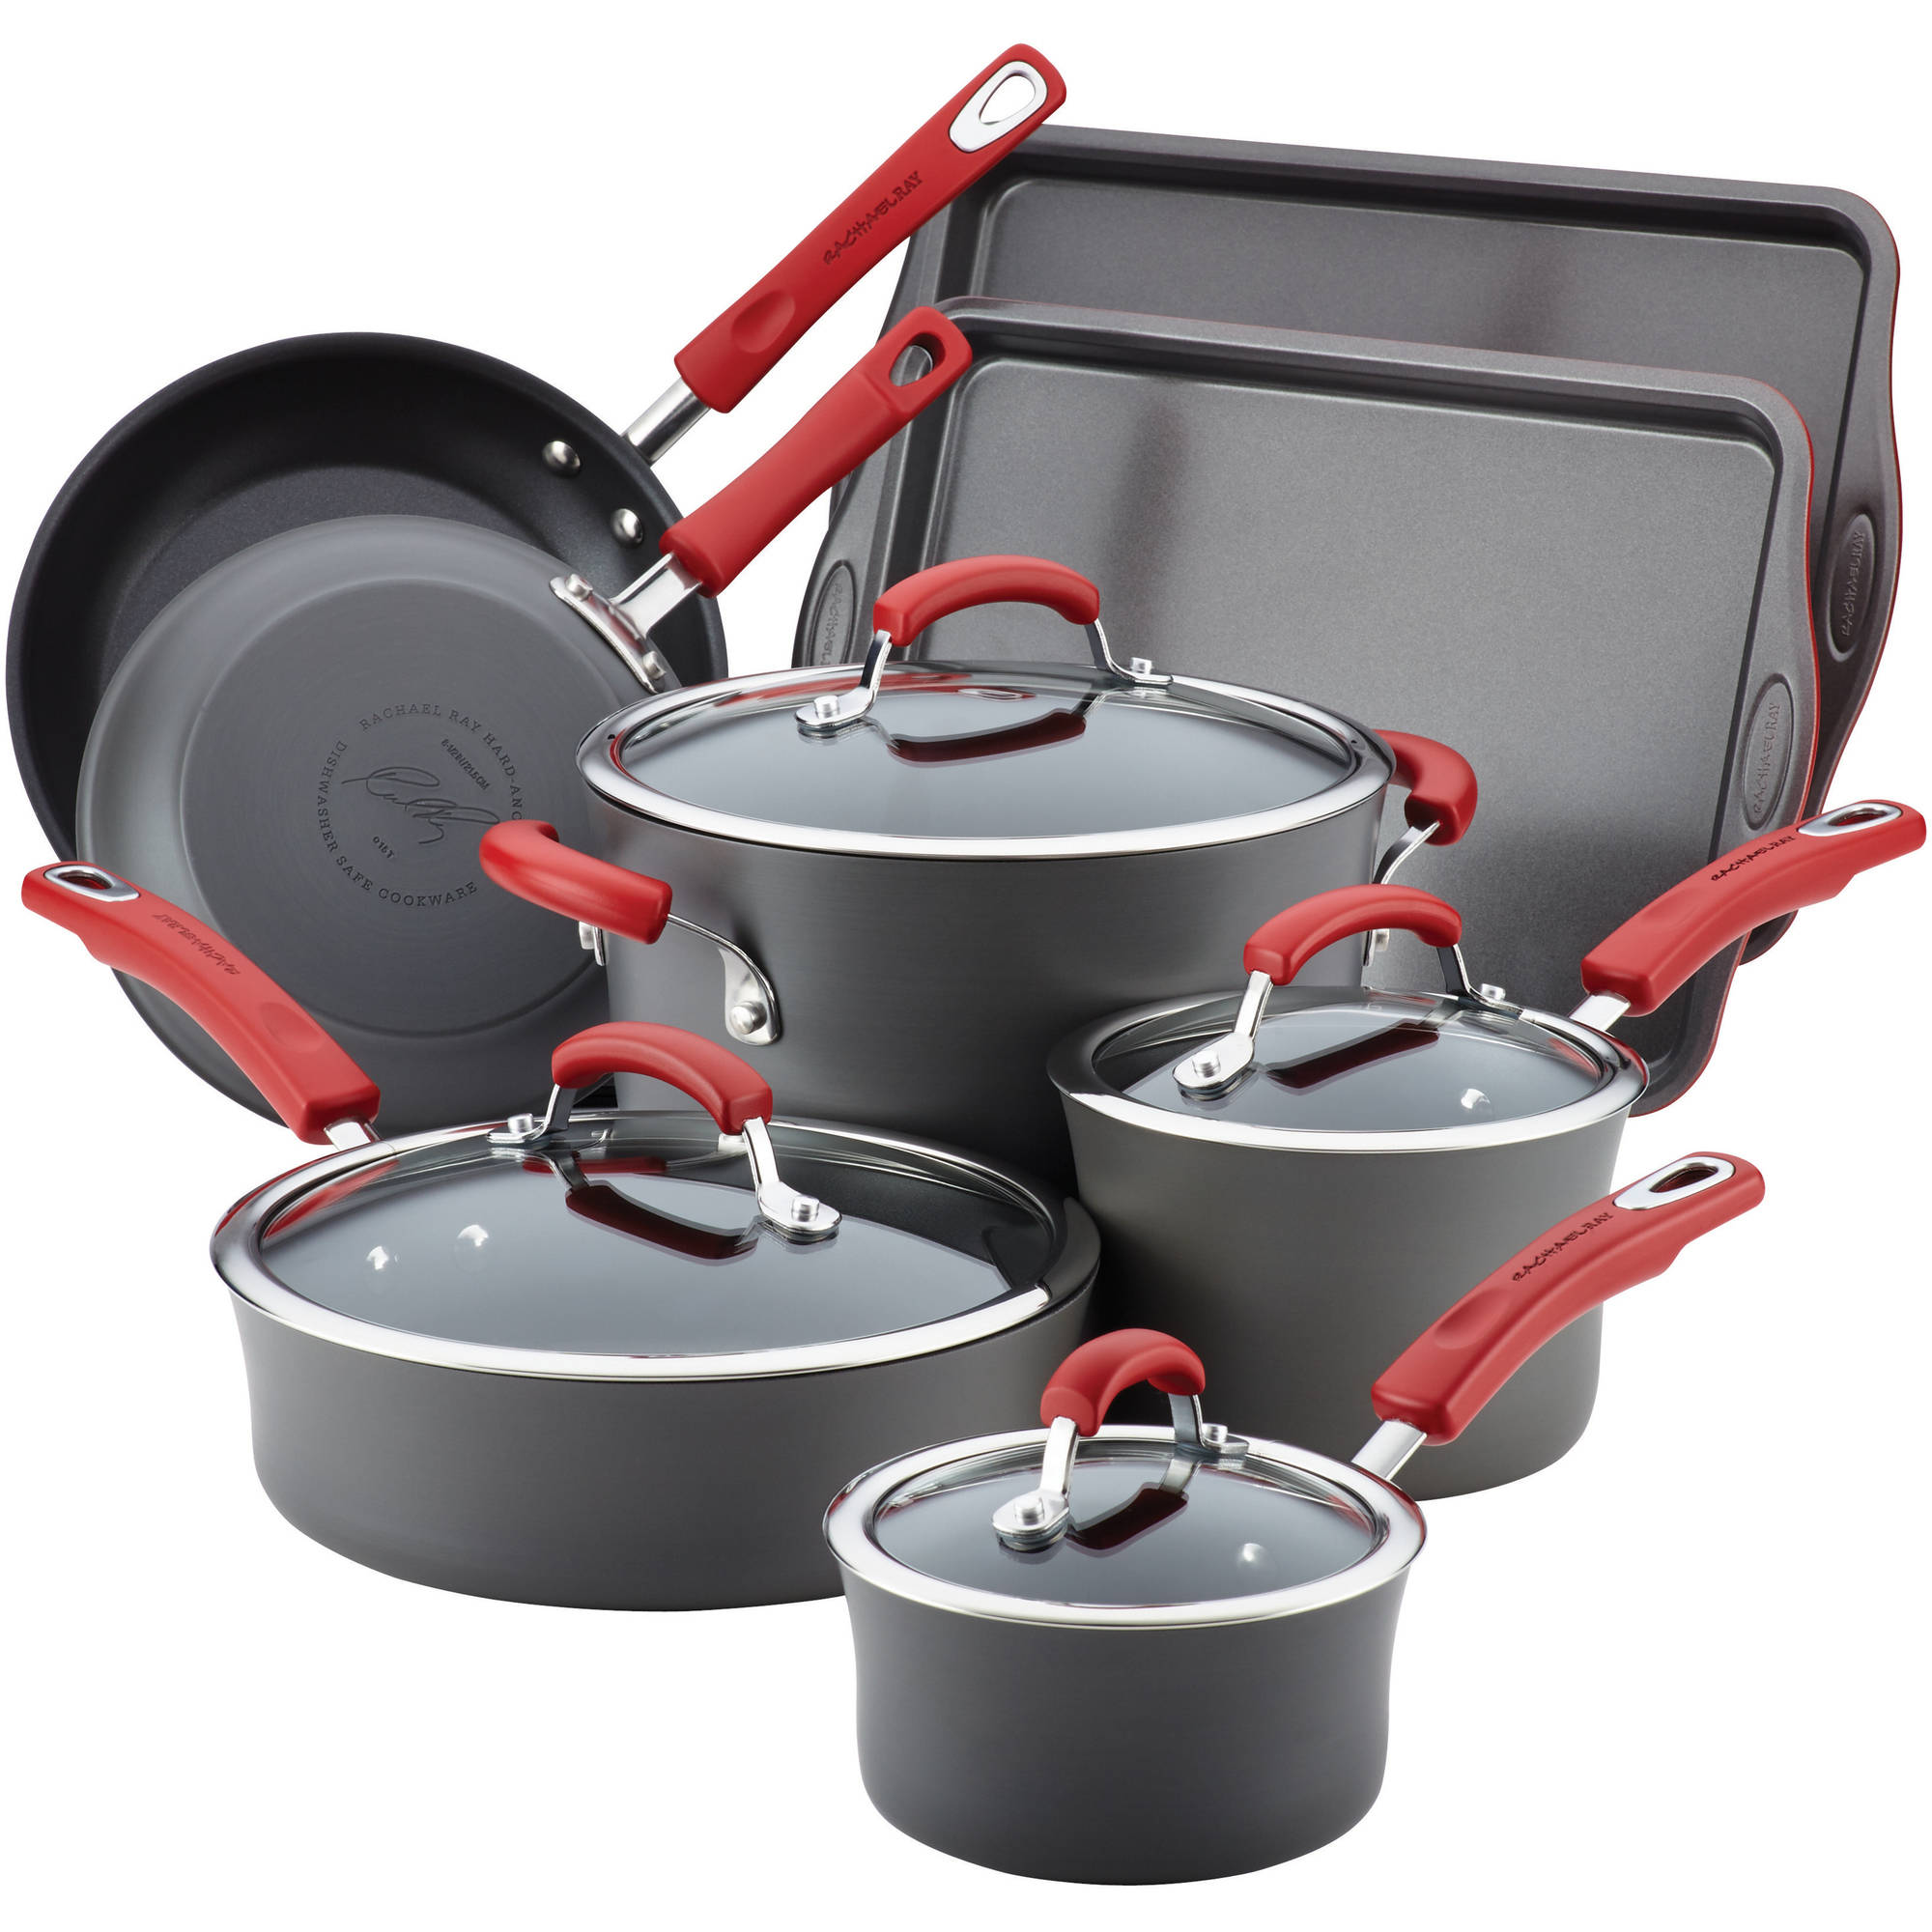 Rachael Ray Hard Anodized Nonstick 12 Piece Cookware Set, Grey With Red  Handles